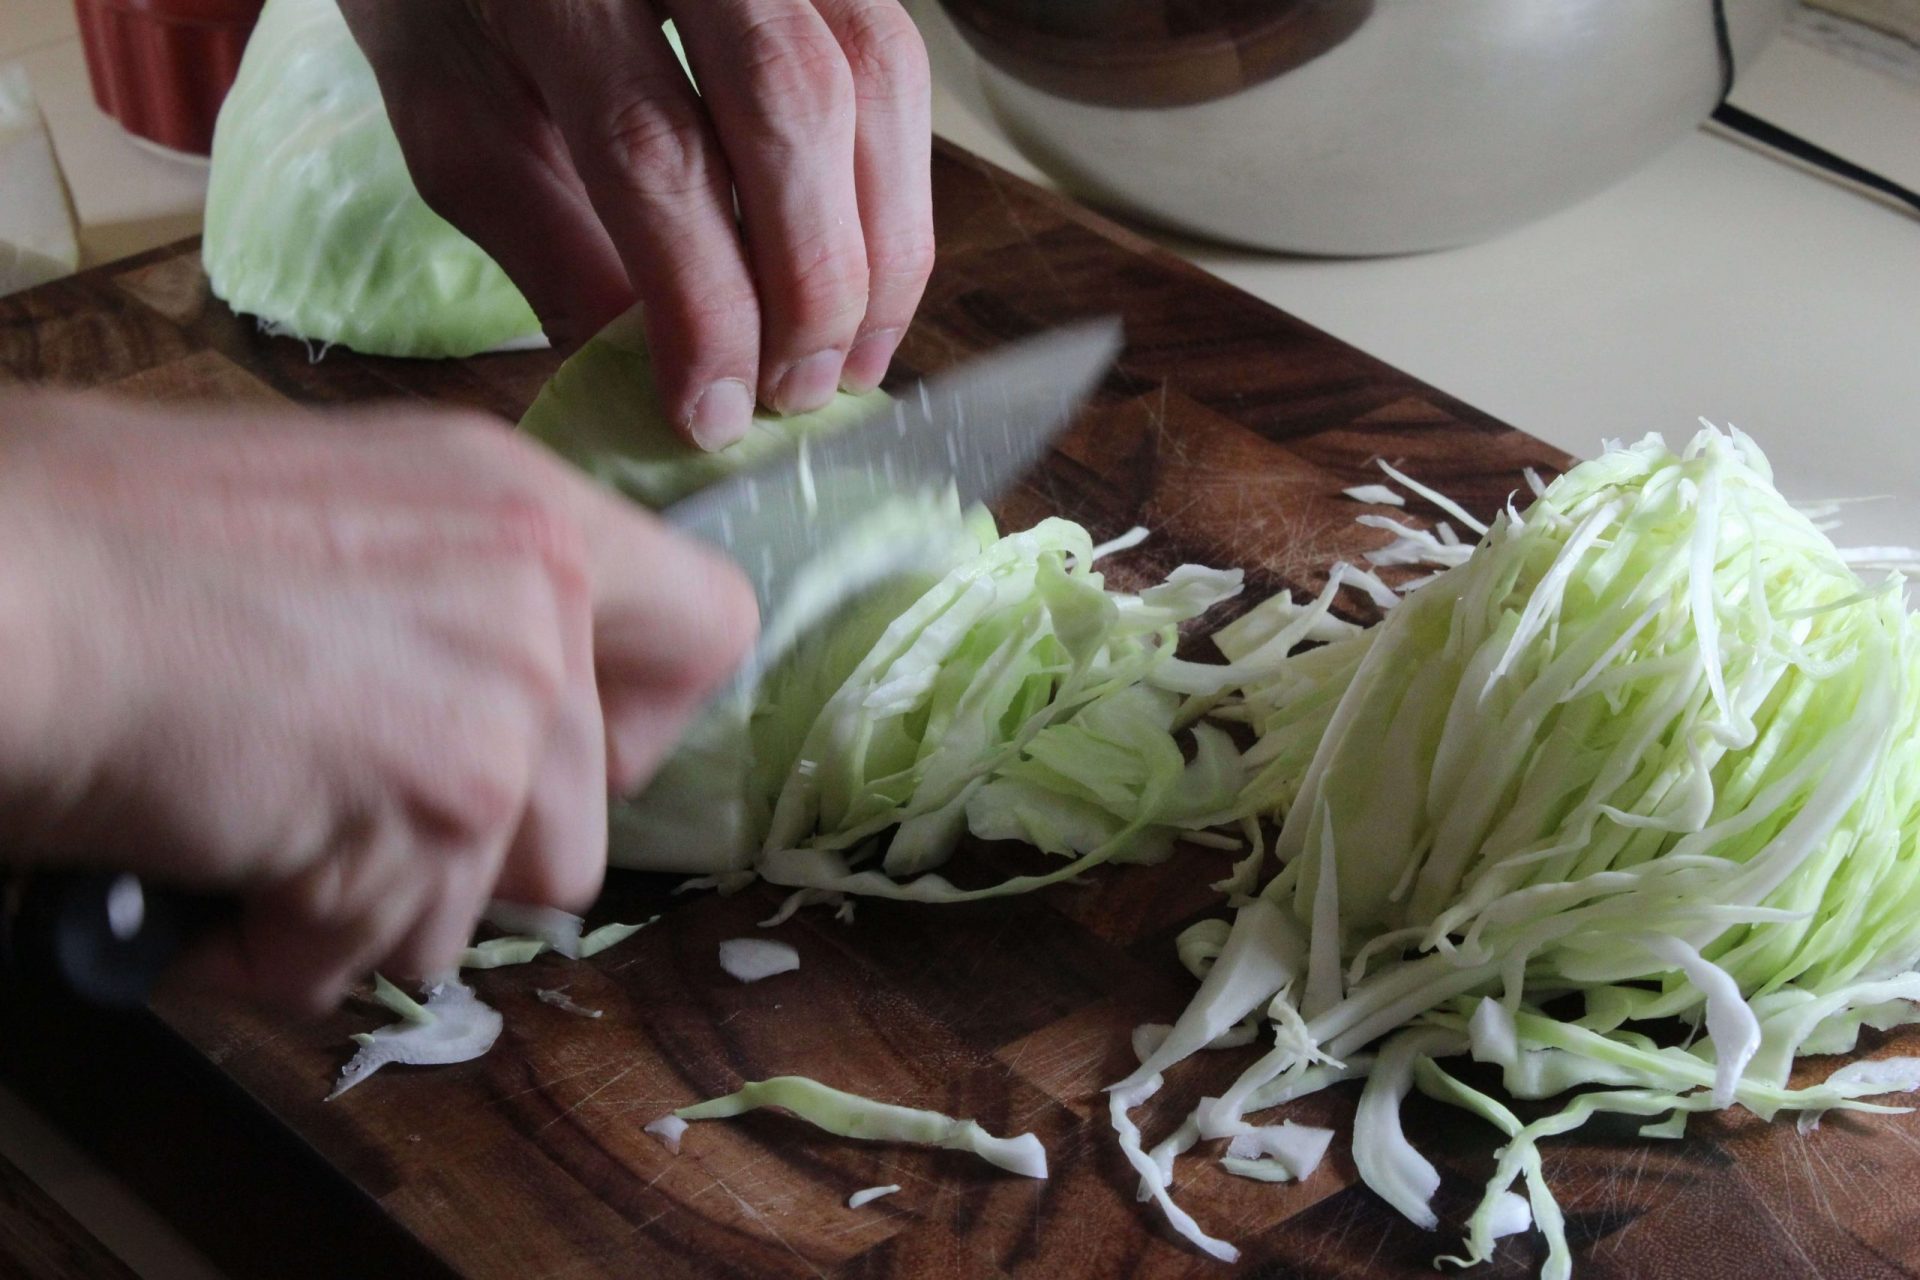 Chopping fresh cabbage to ferment